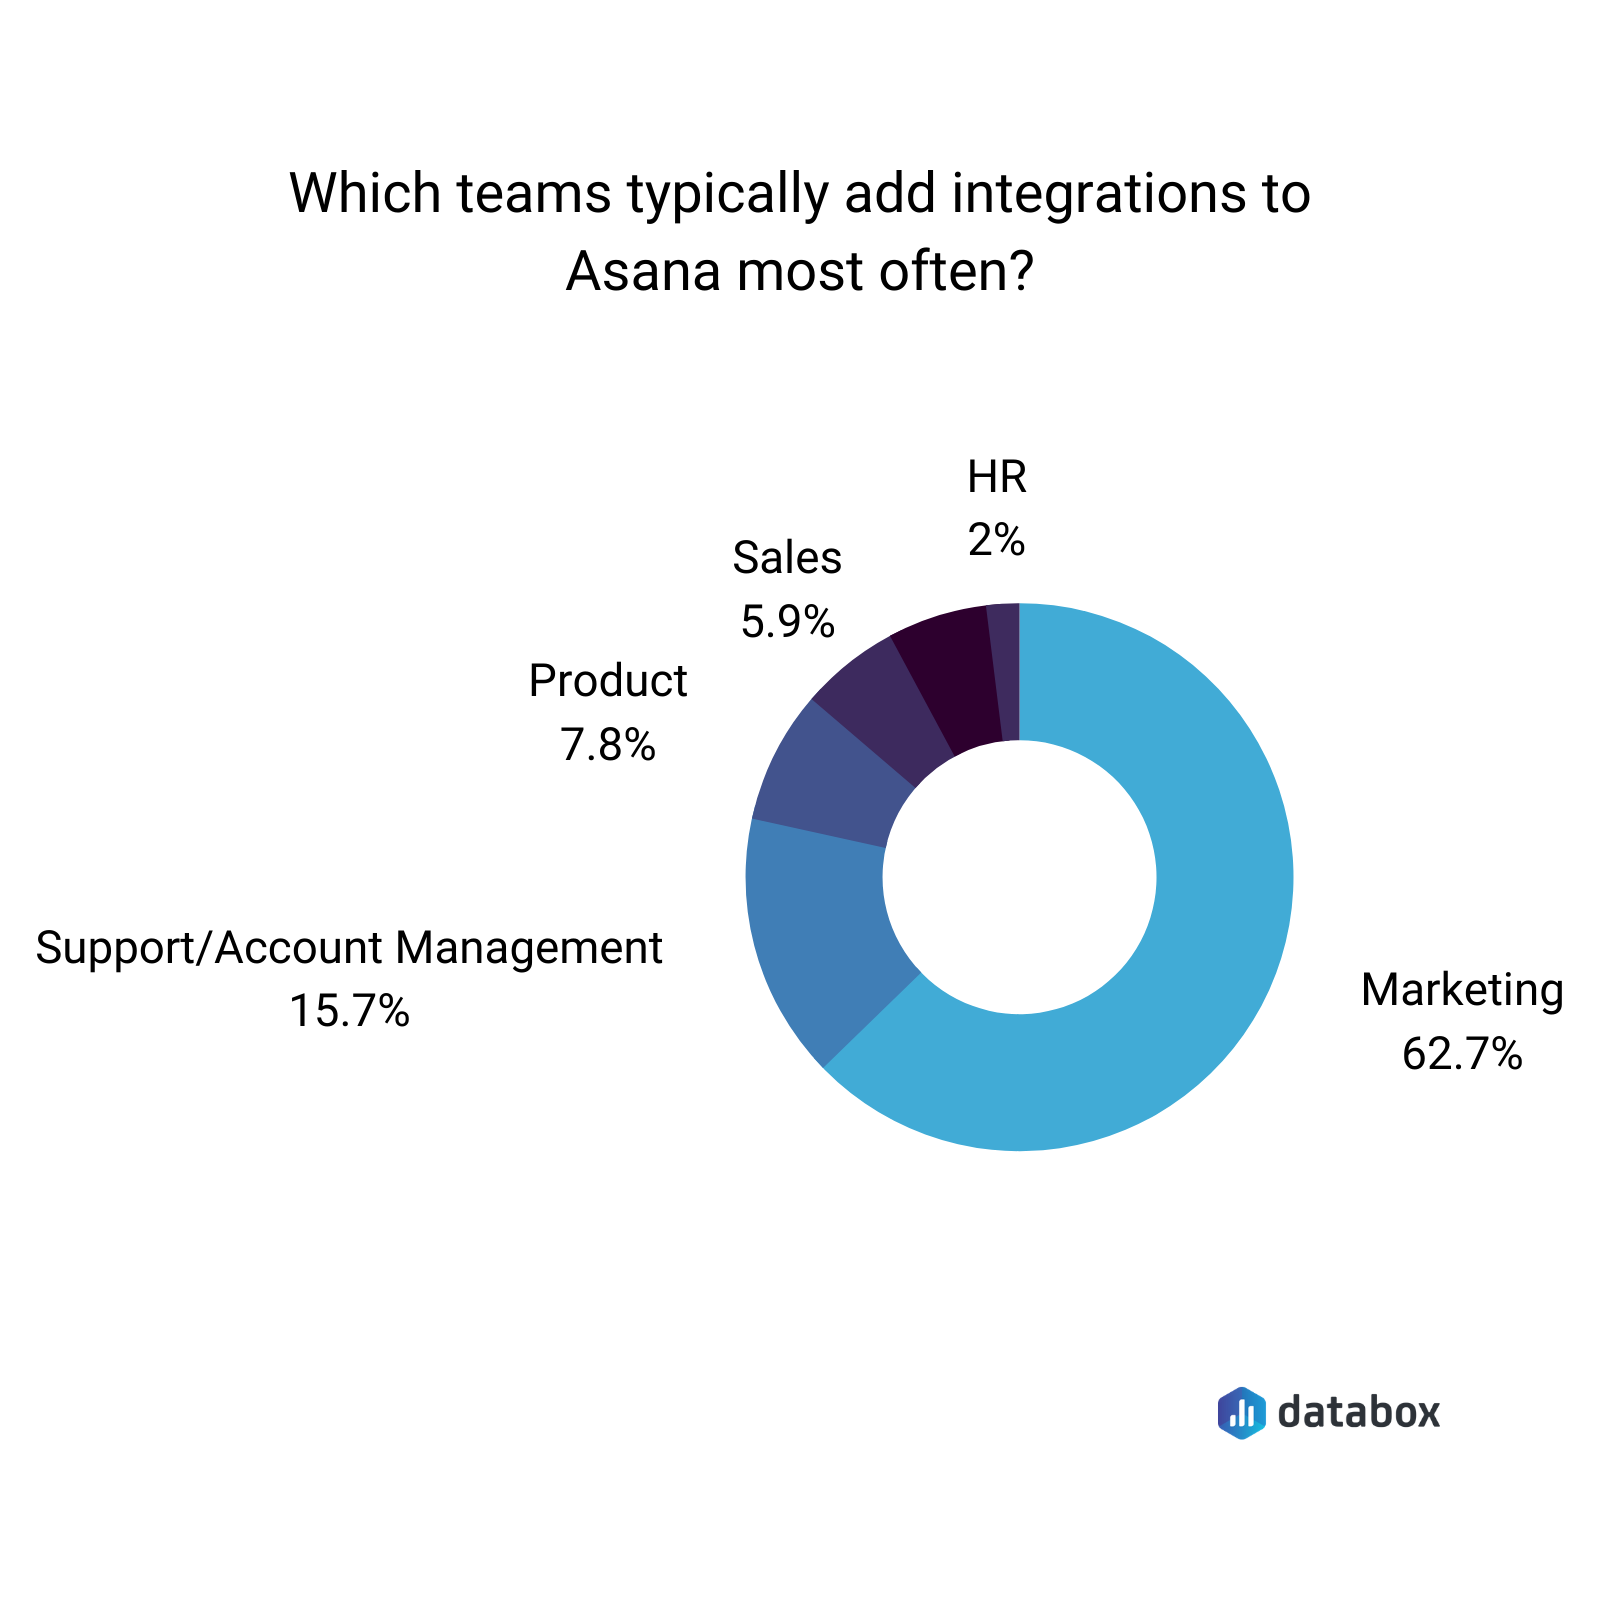 Which team typically add integrations to Asana most often?